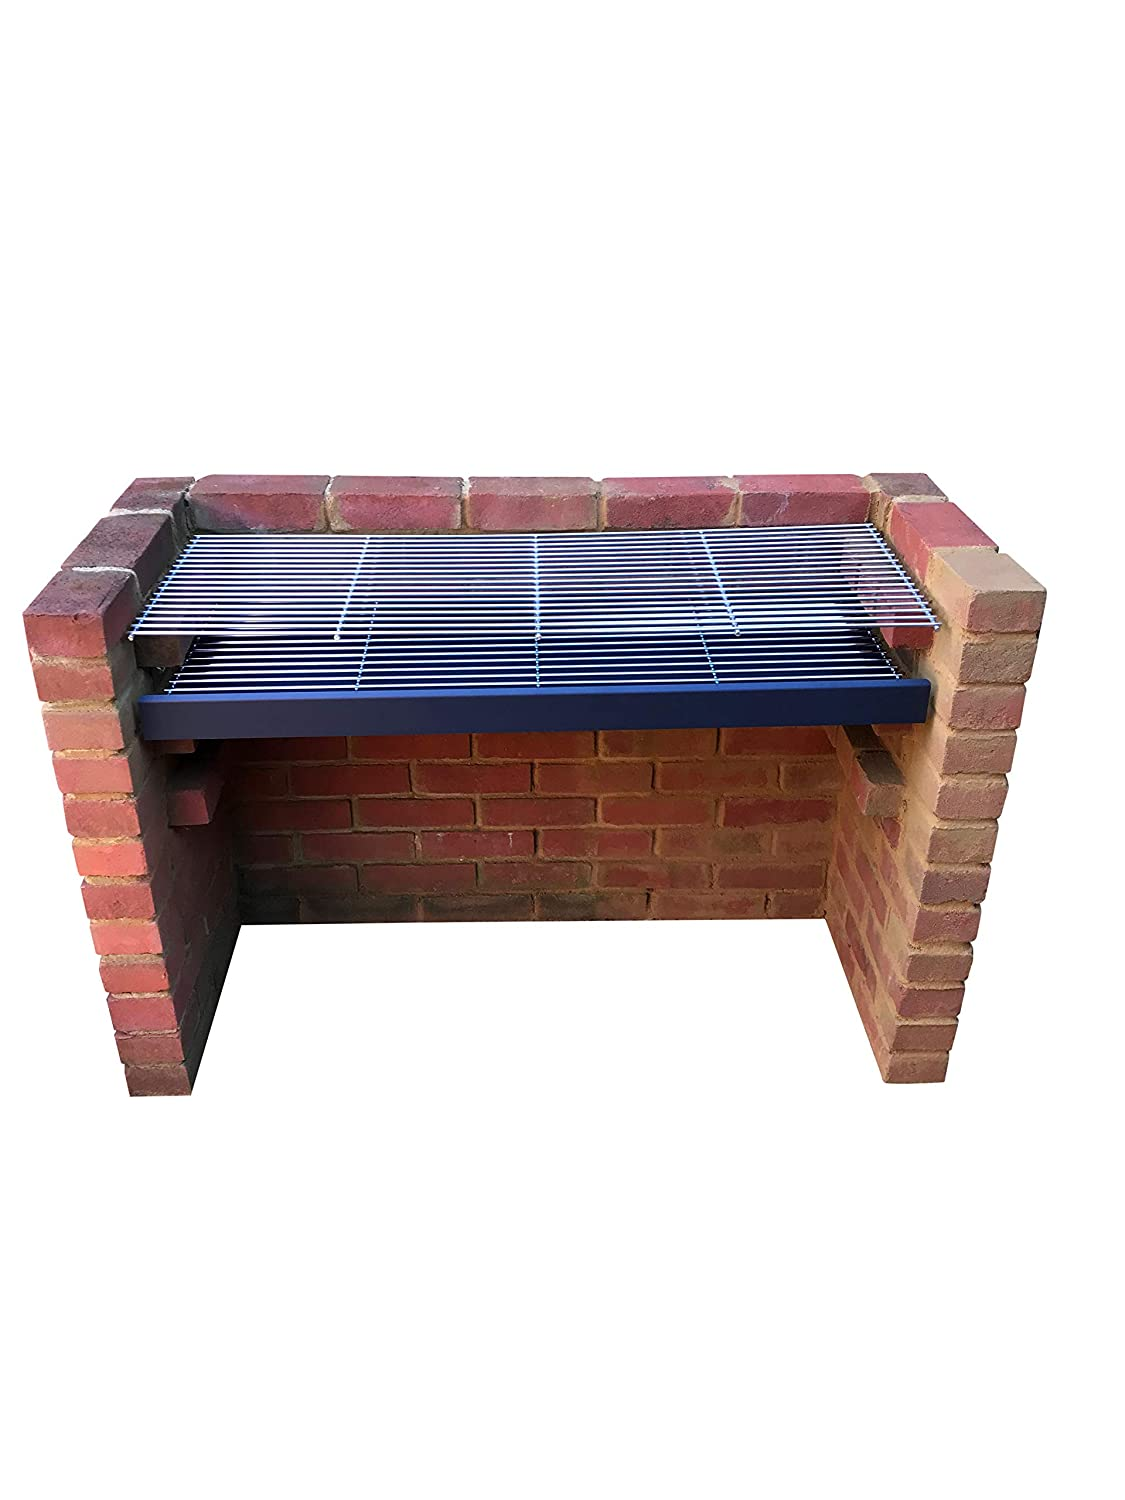 SunshineBBQs Extra Large Brick BBQ Kit with 6mm Stainless Steel Grill /& Measuring 112cm